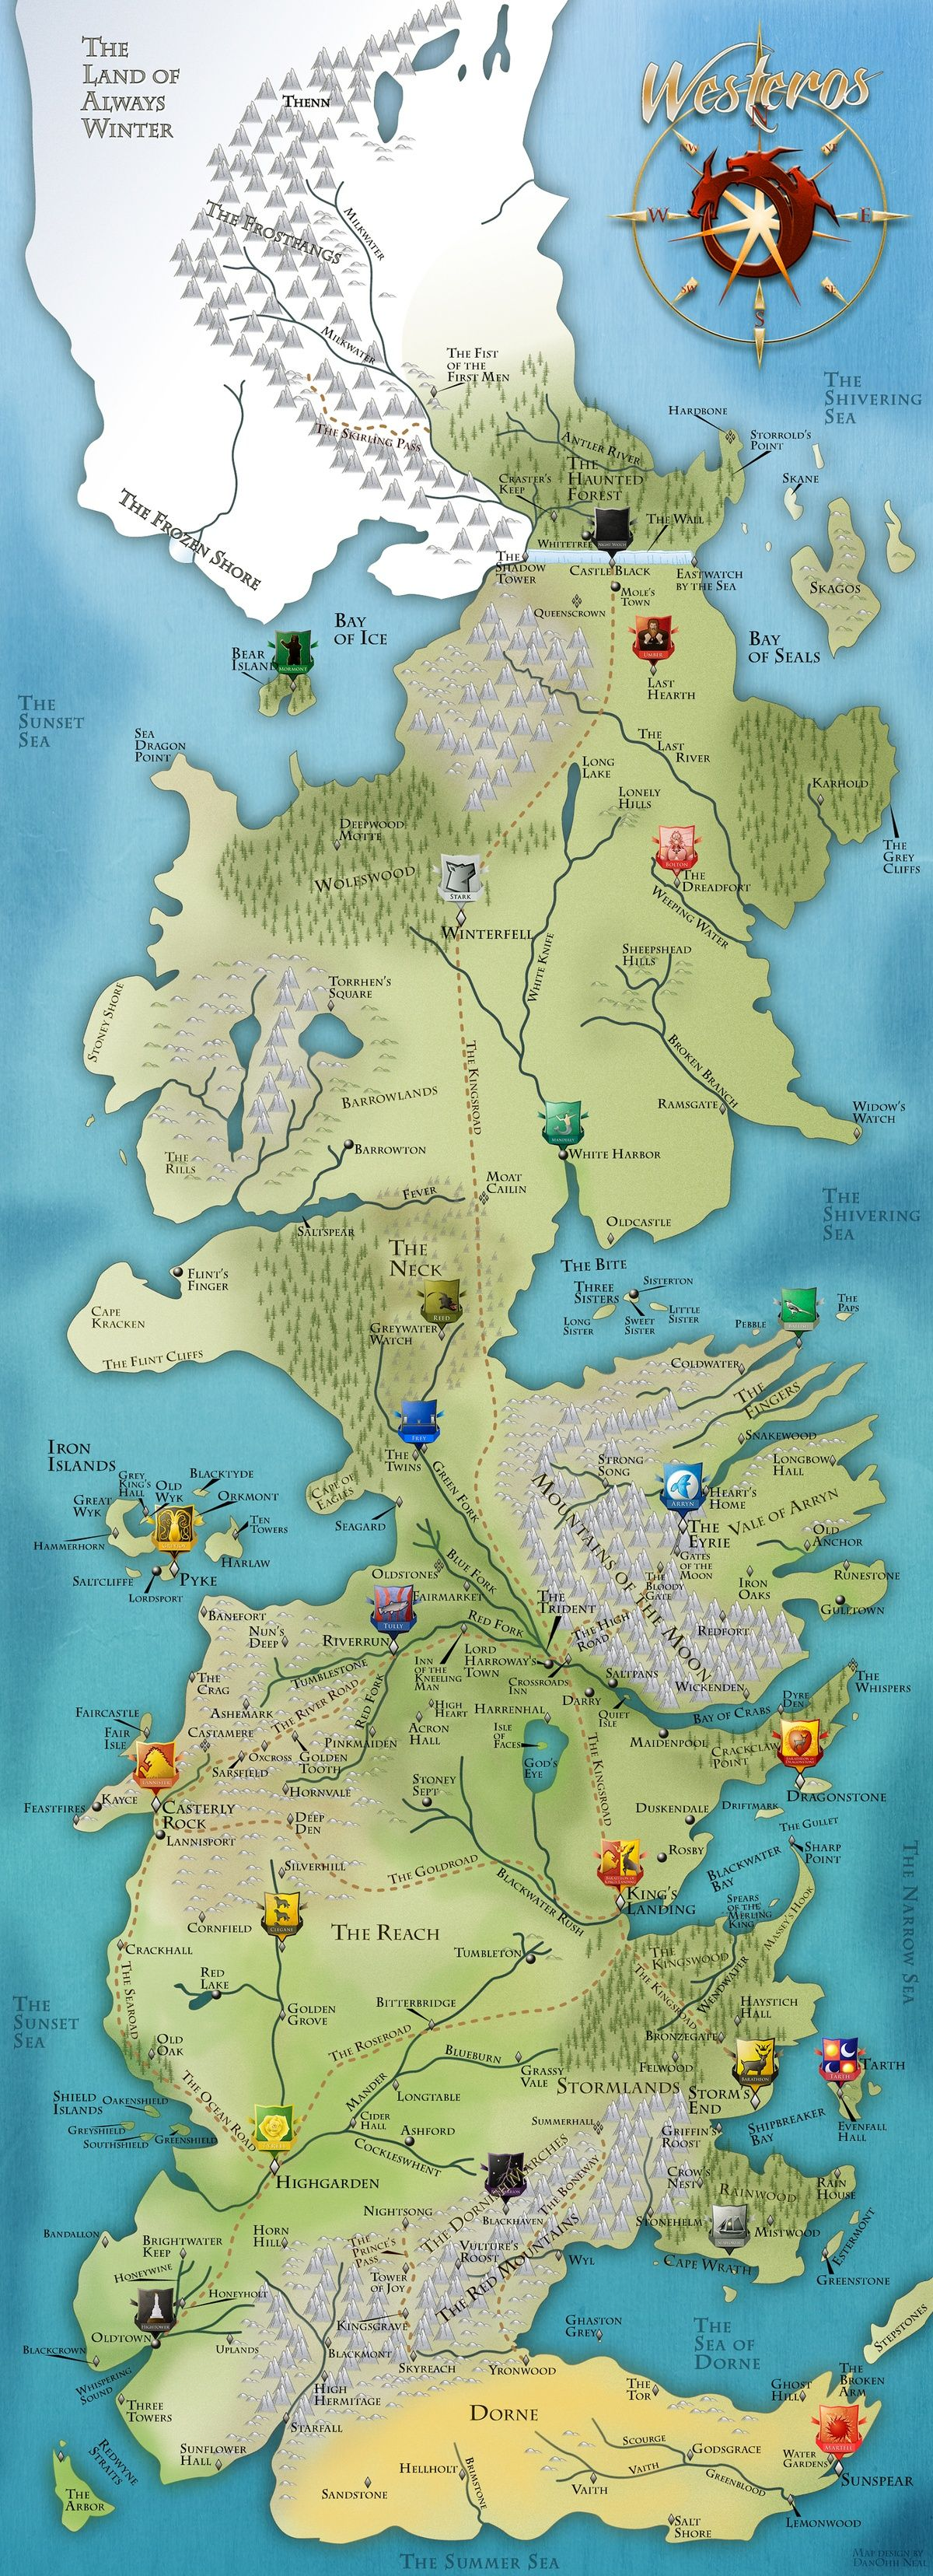 Got westeros map game of thrones fannnnnnnnatic game of thrones map westeros map game - Westeros map high resolution ...